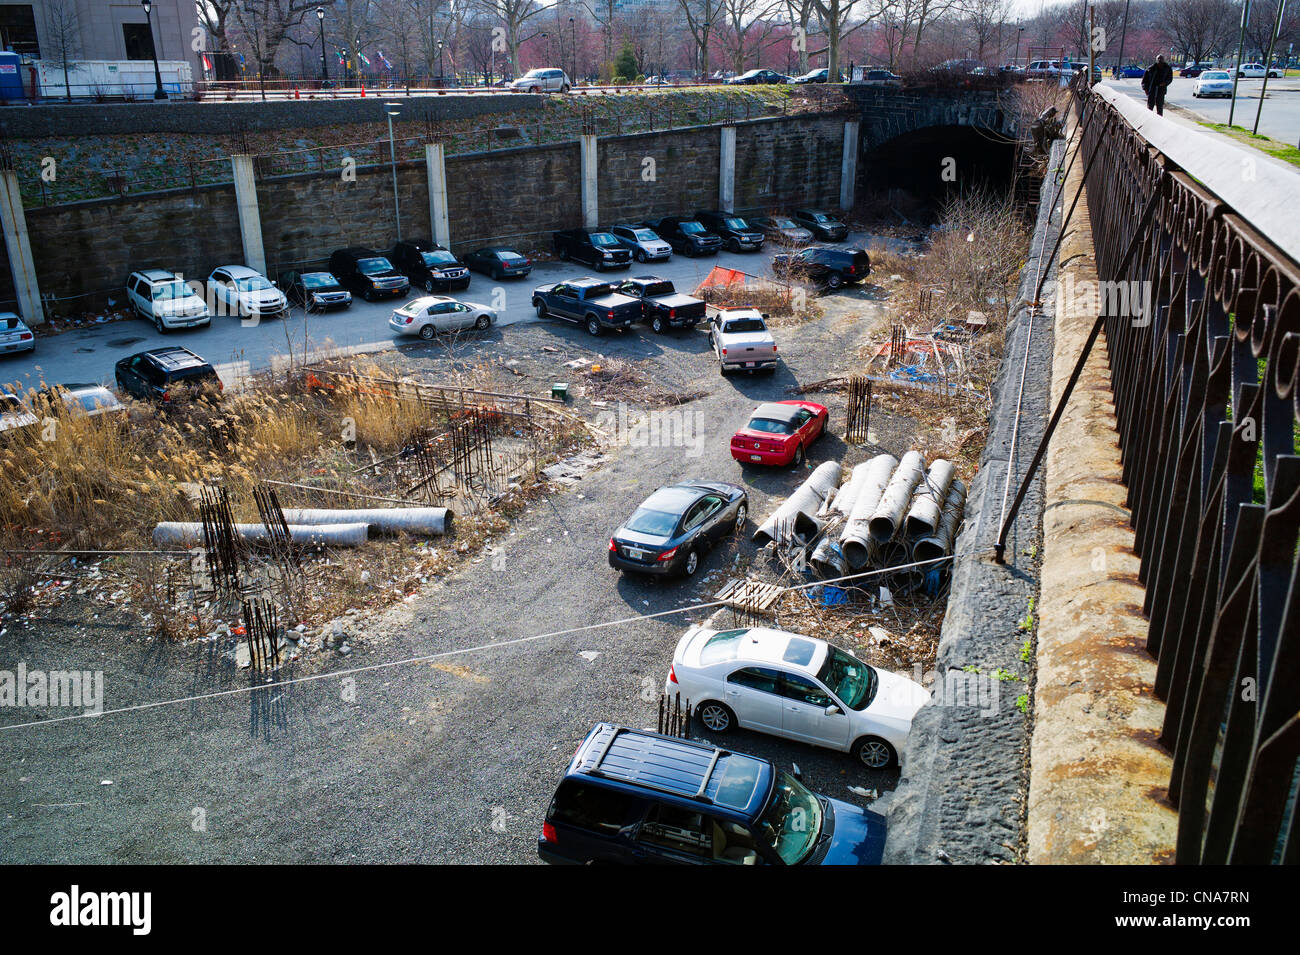 Open vacant below grade lot used for parking and filled with litter and debris in center city Philadelphia, Pennsylvania, - Stock Image